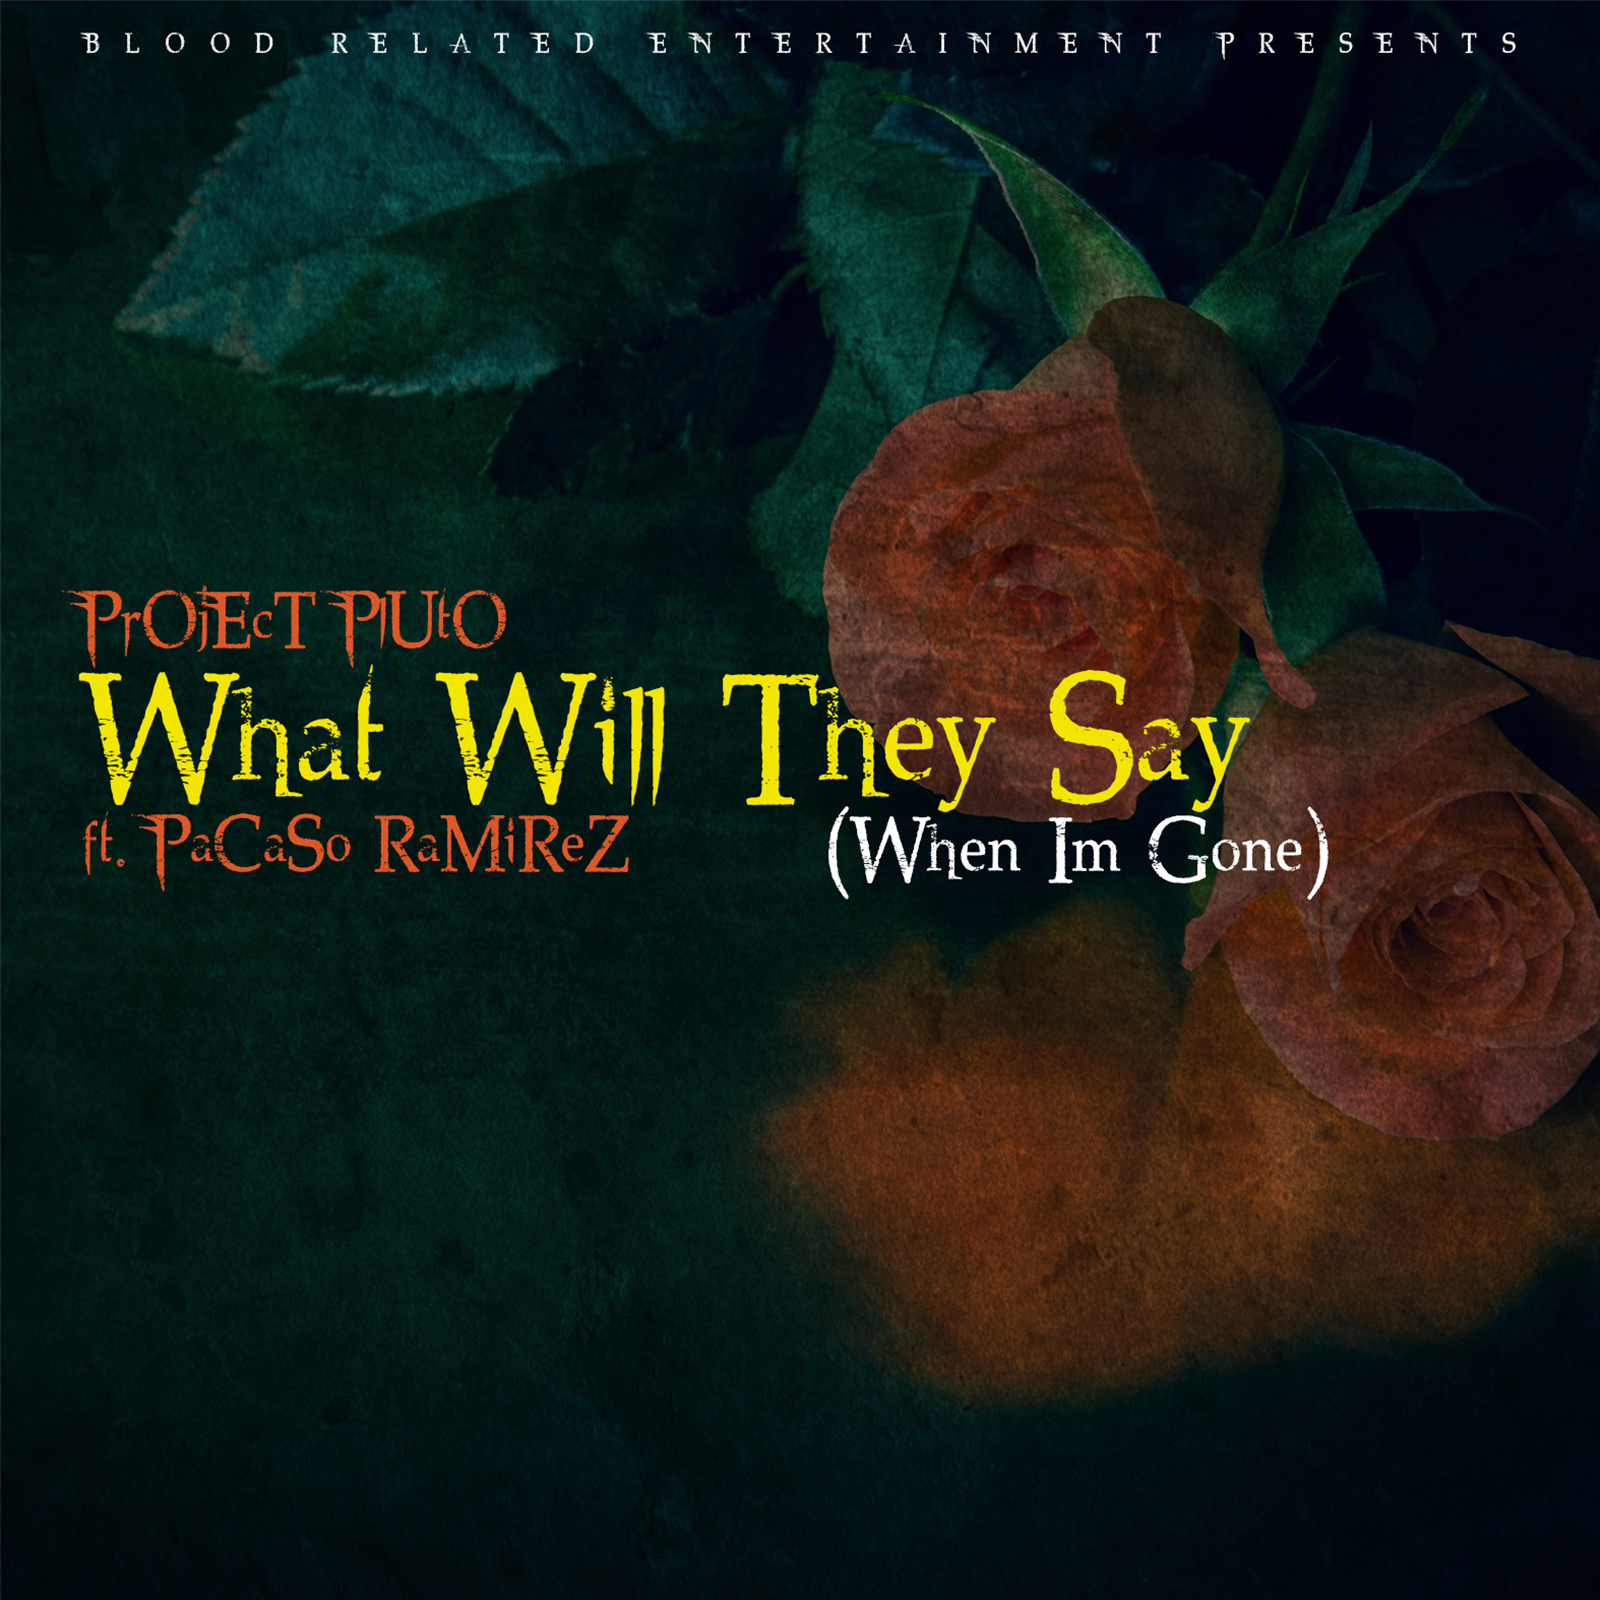 What Will They Say (When I'm Gone) by Project Pluto & Pacaso Ramirez